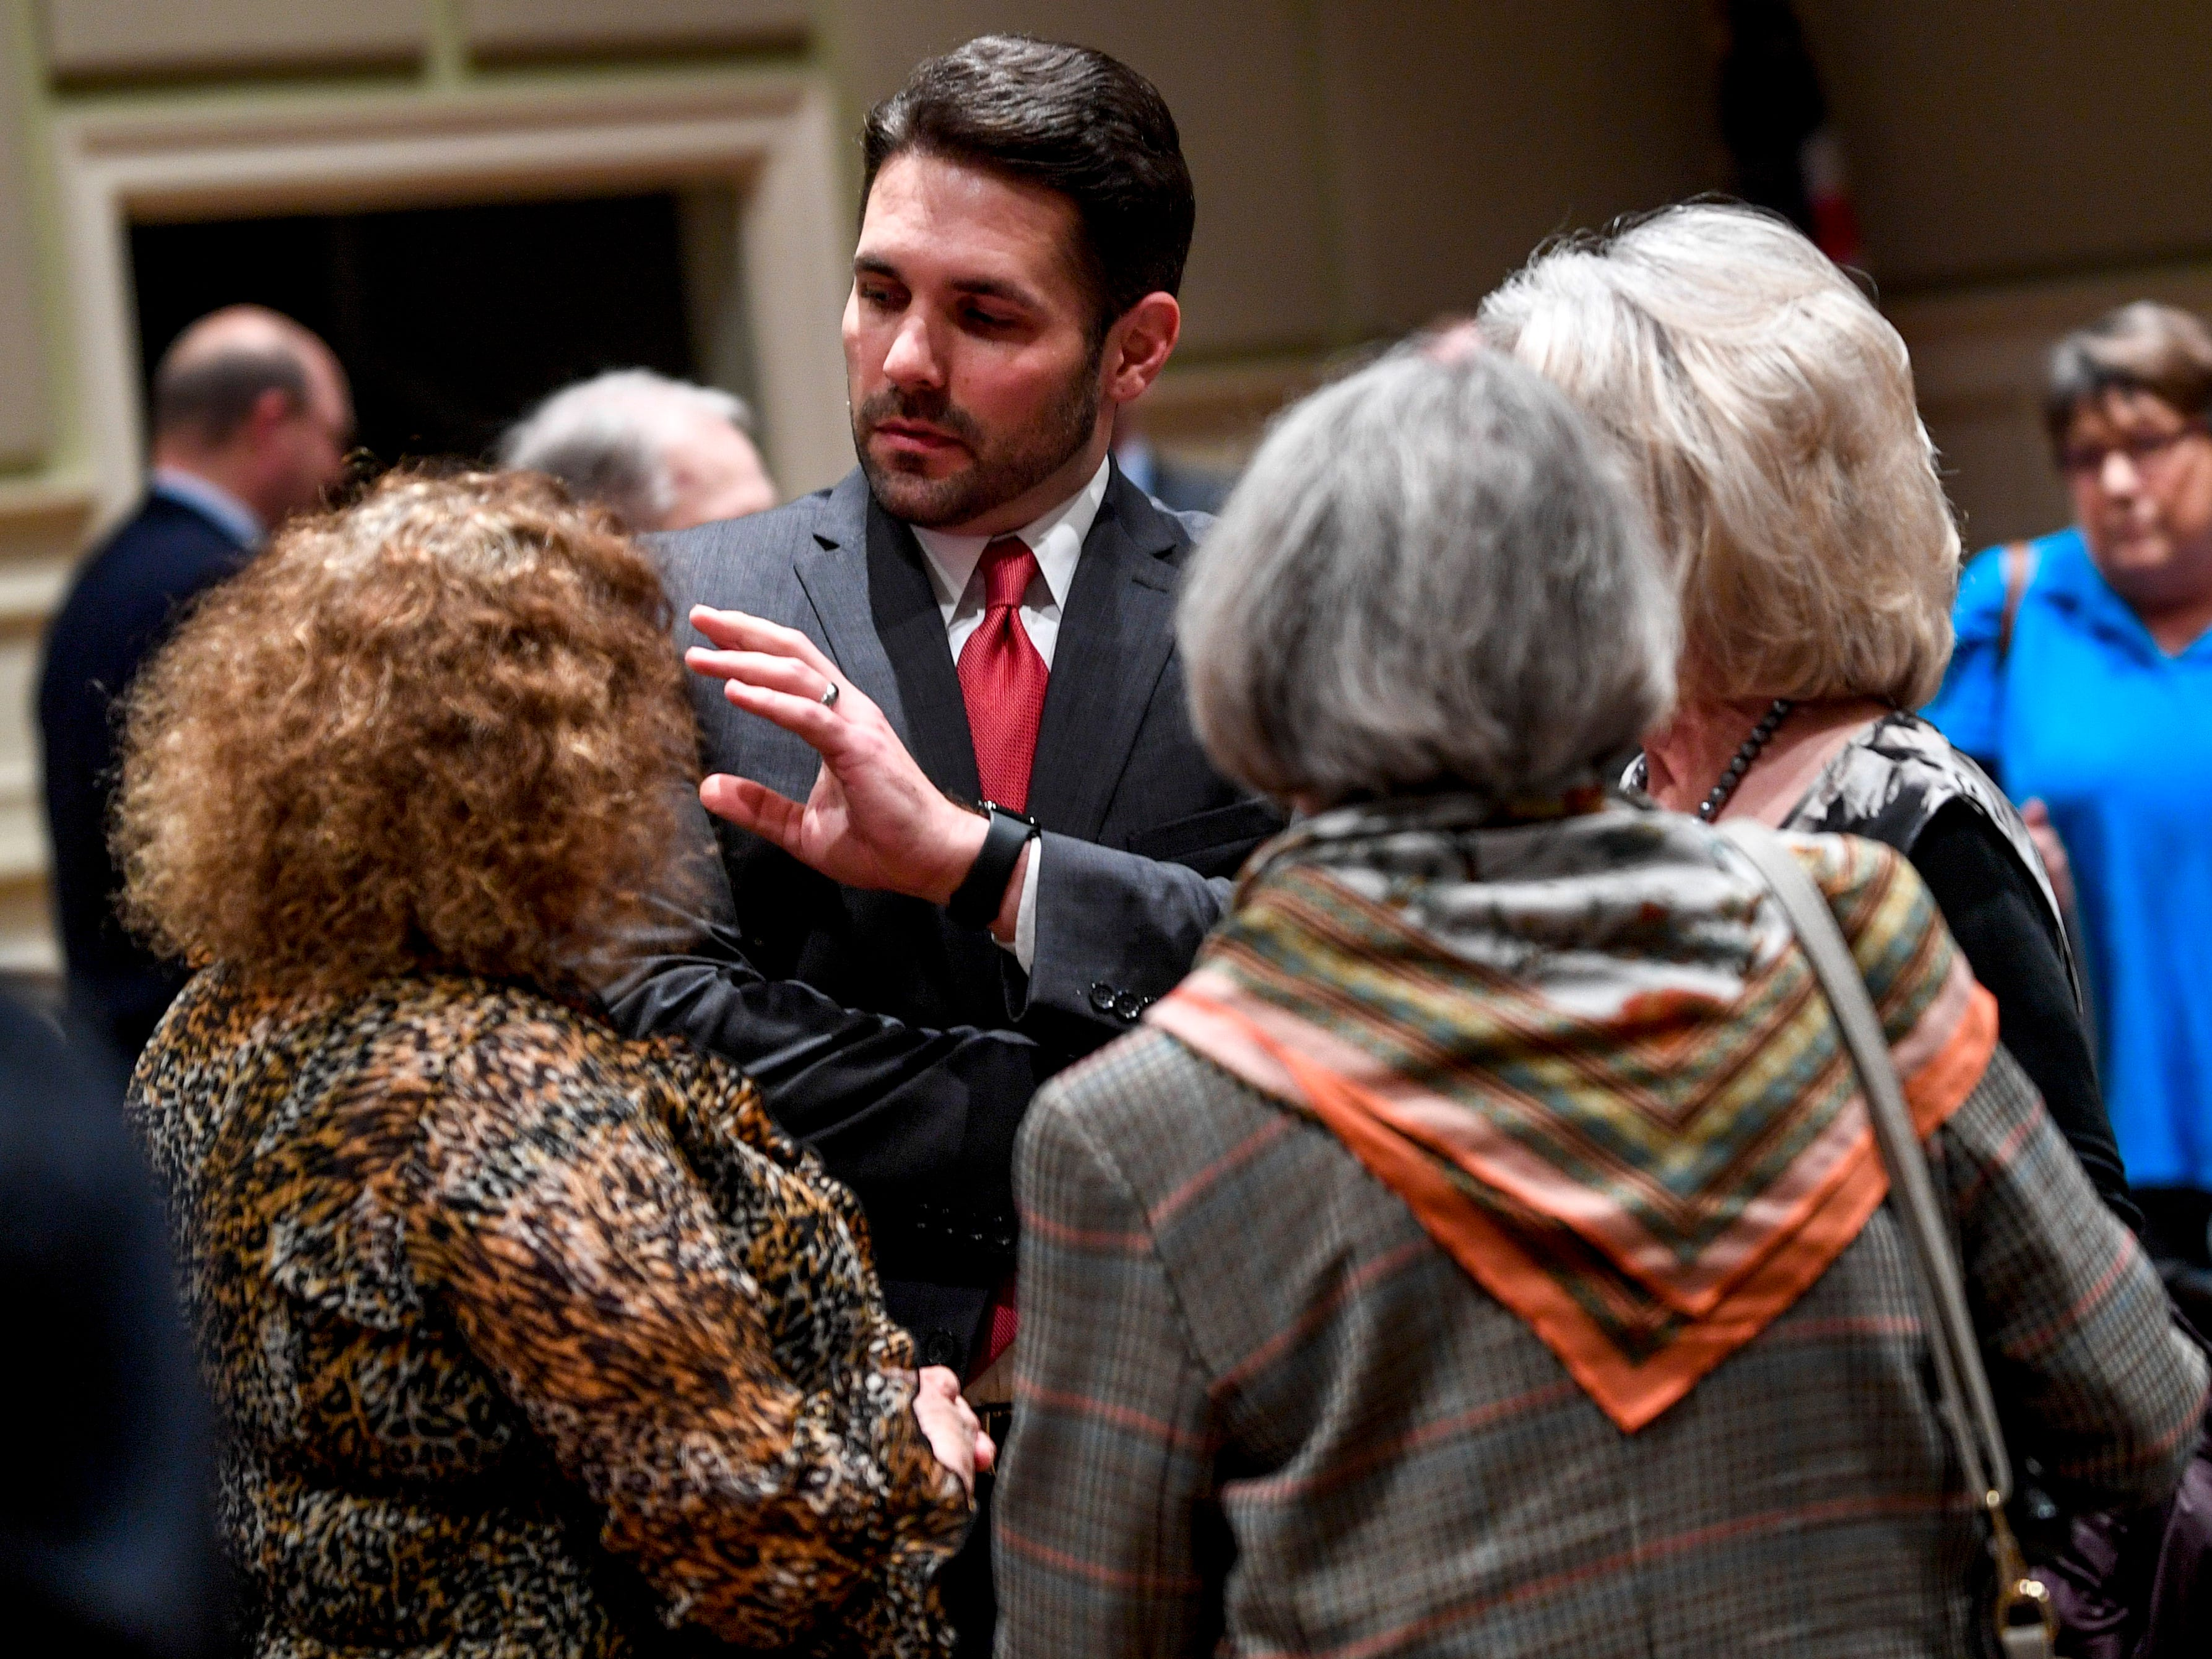 Mayoral candidate Scott Conger speaks with guests after the monthly First Friday Forum at First United Methodist Church in Jackson, Tenn., on Friday, Jan. 4, 2019.